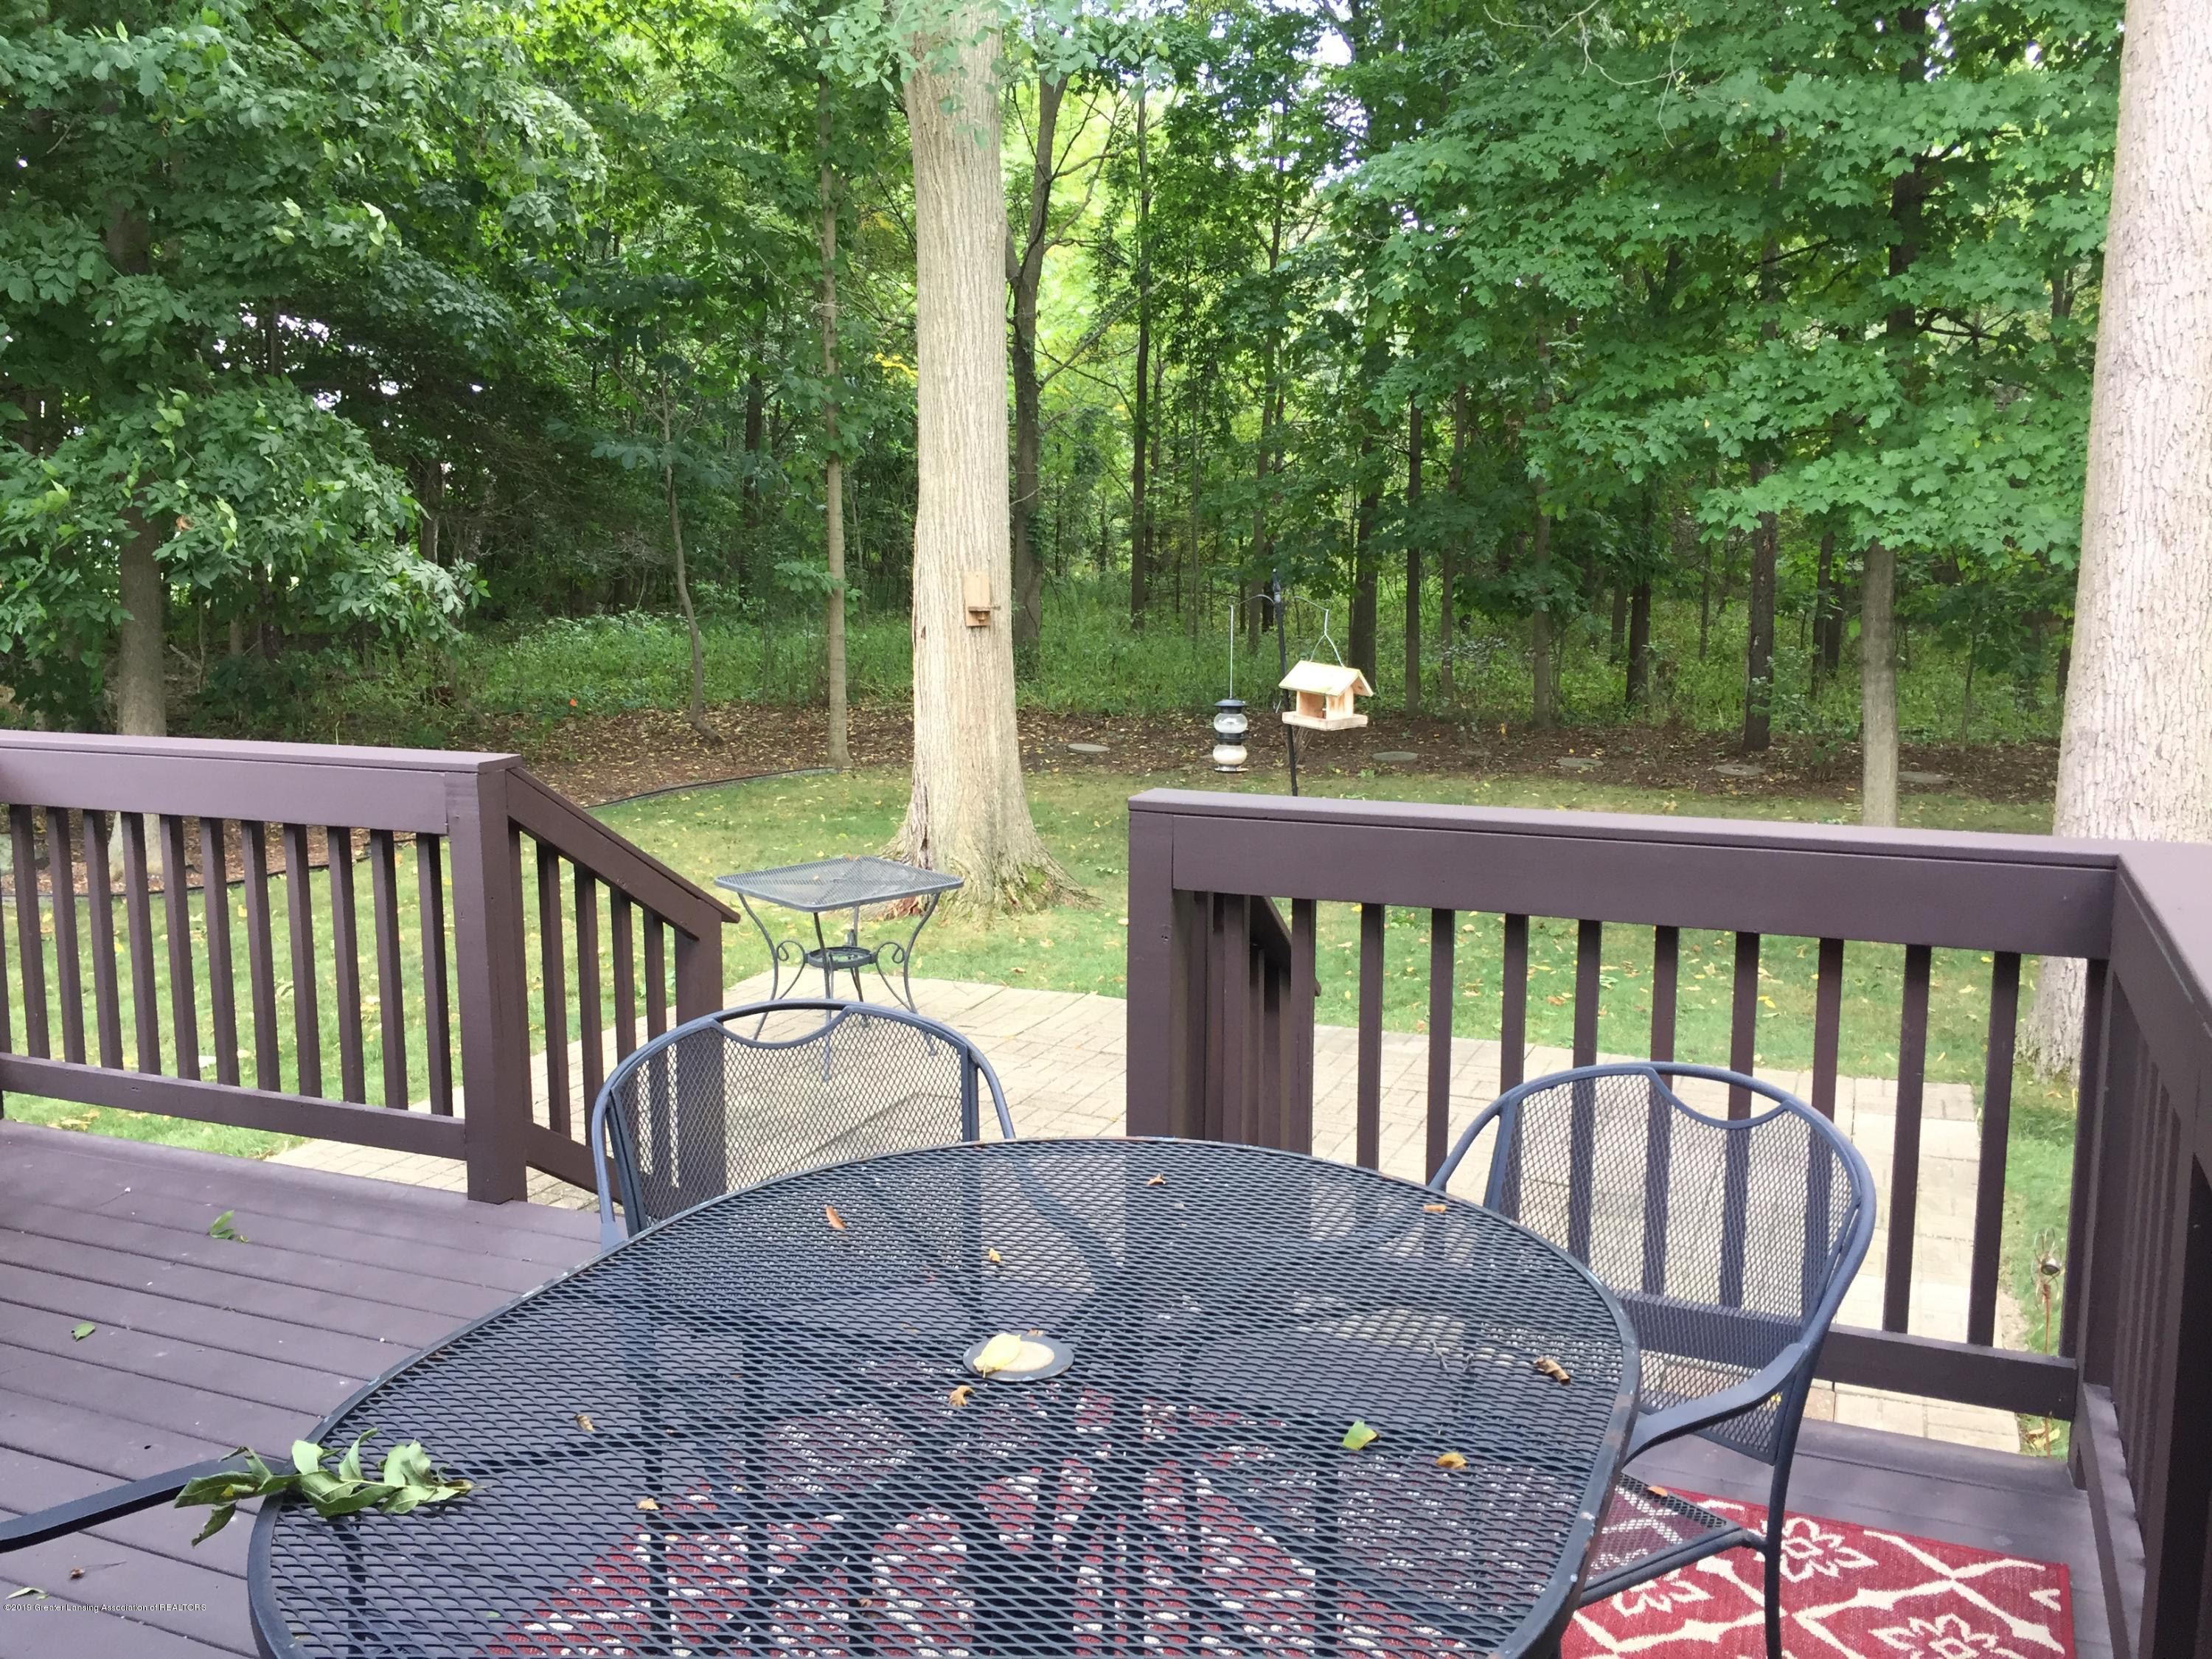 8617 Wheatdale Dr - Back Deck Overlooking Wooded Lot - 63